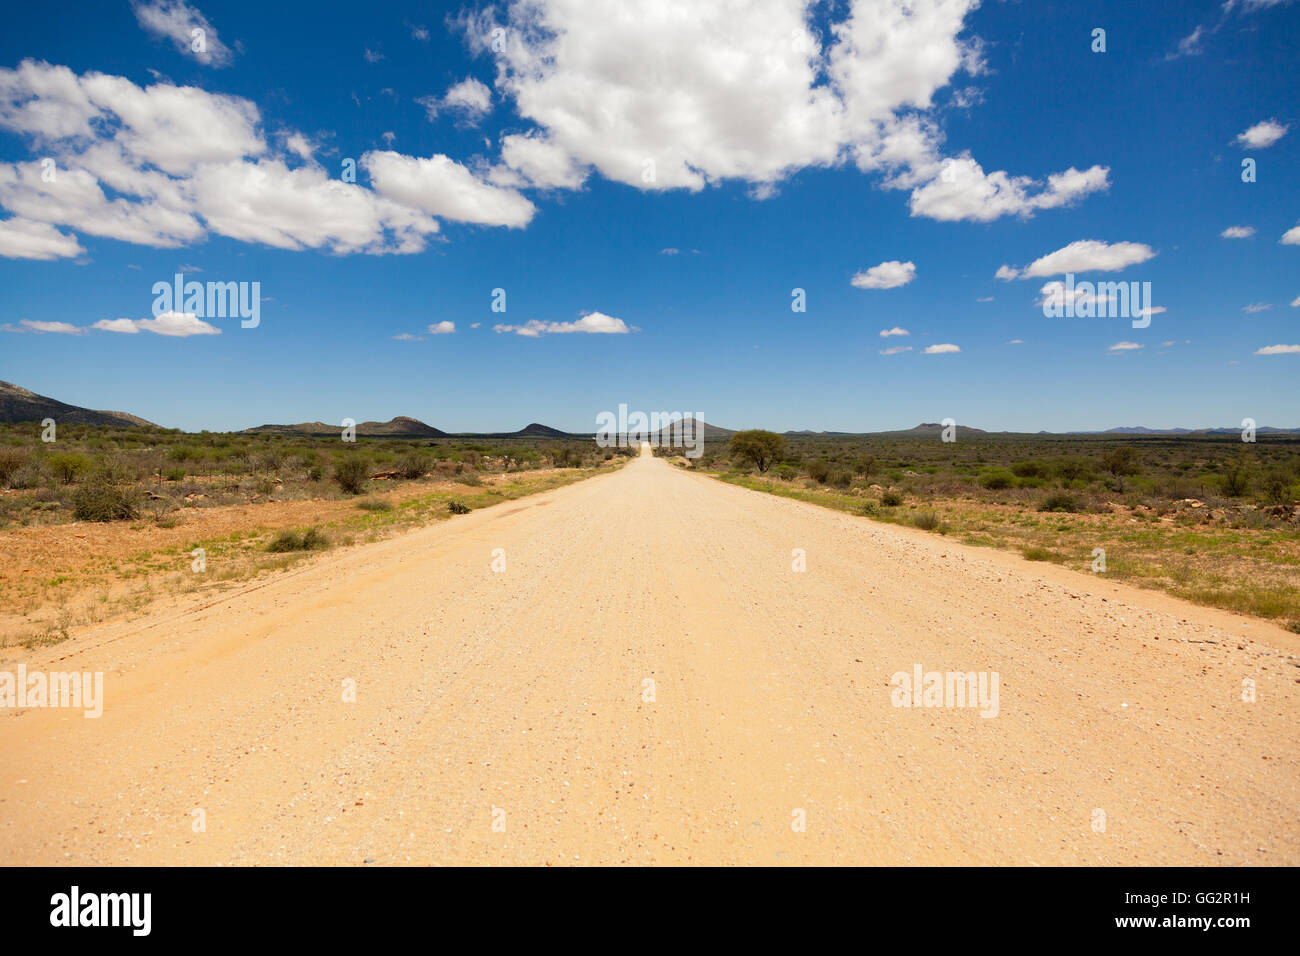 Namibia Highway C2, East of Rehoboth - Stock Image